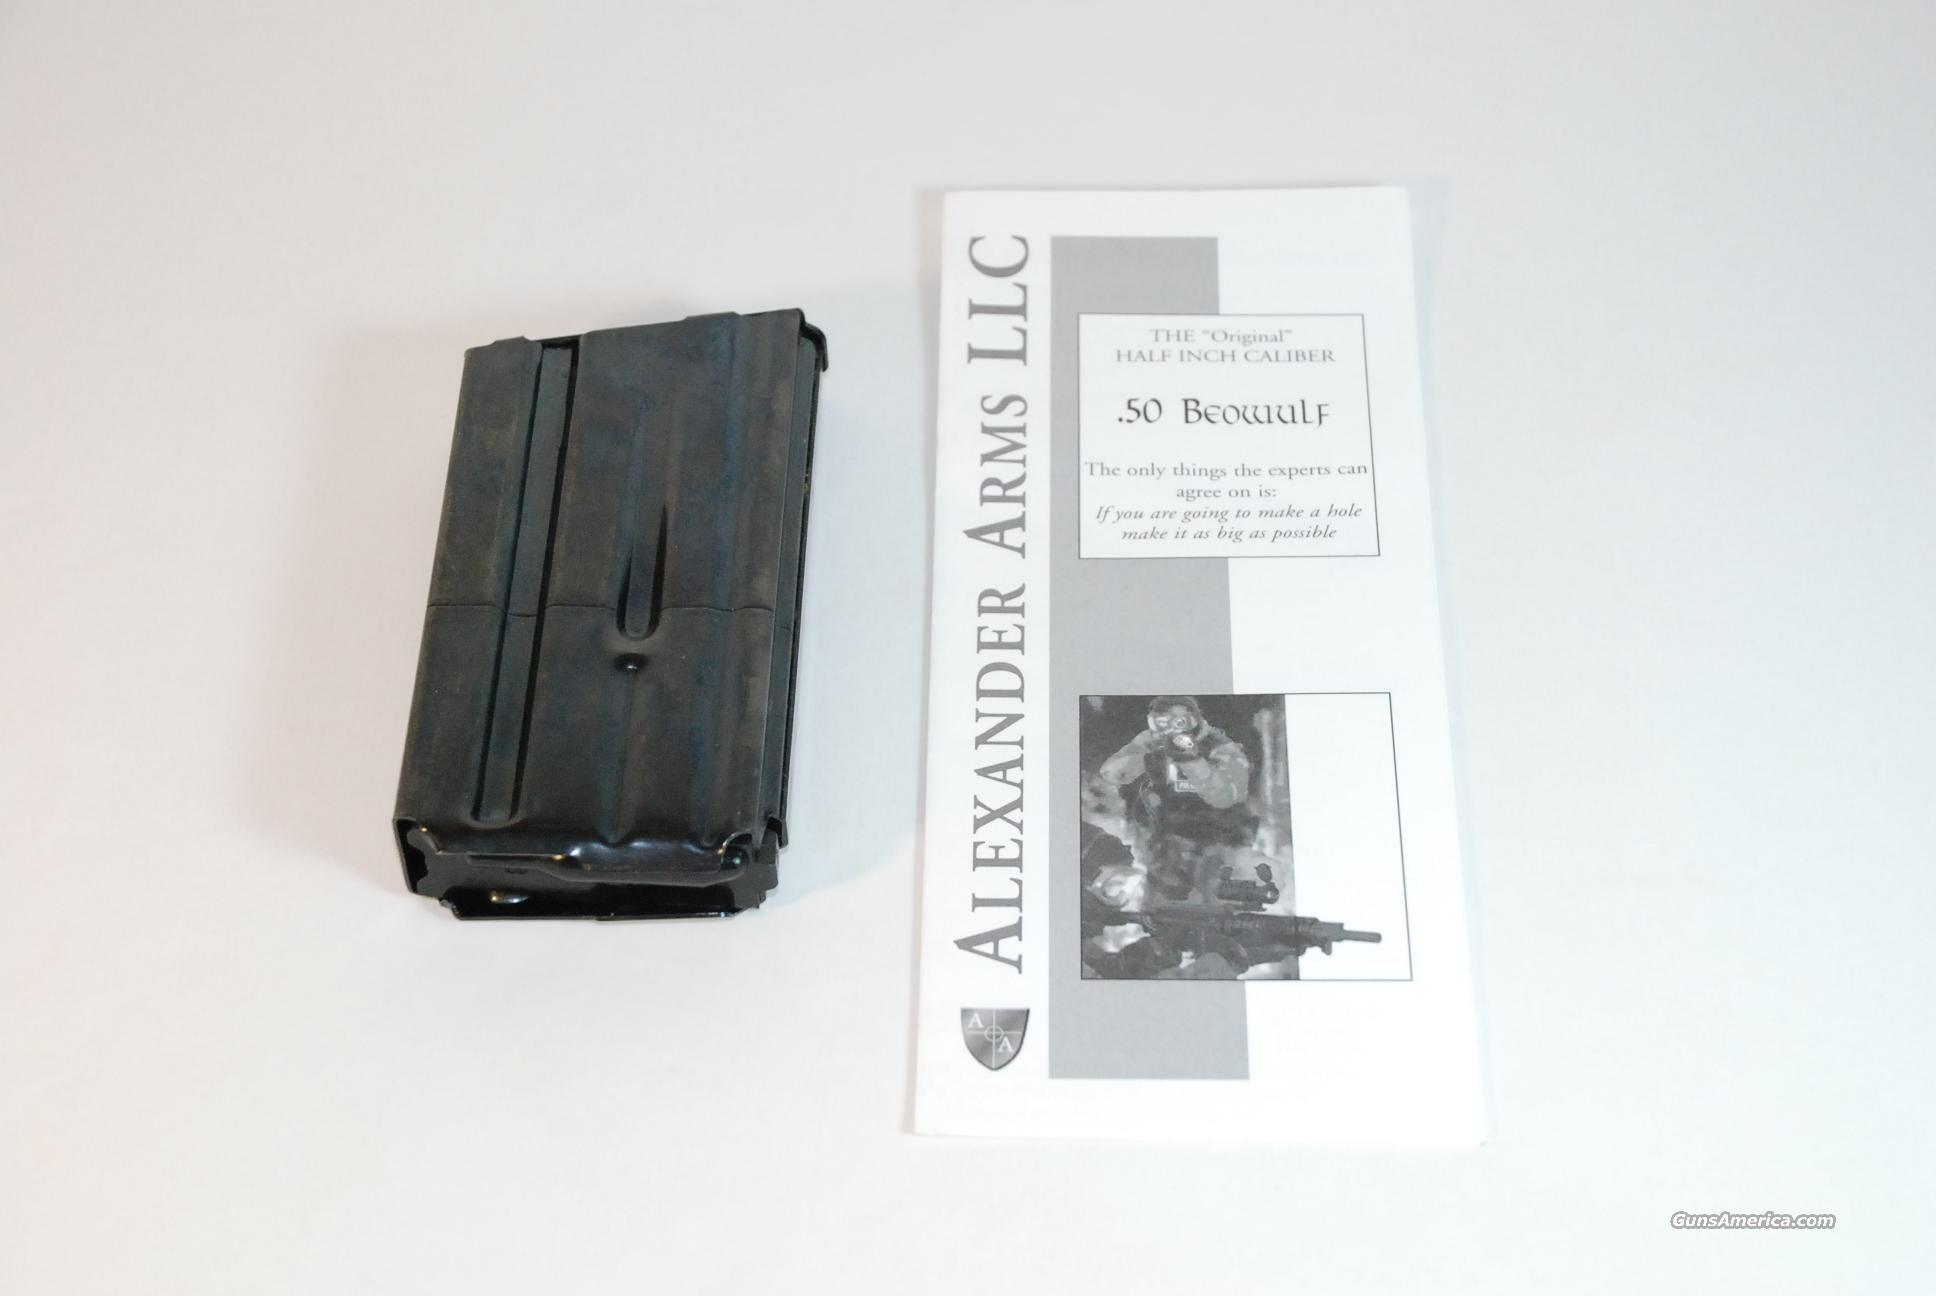 Alexander Arms 50 Beowulf 7-round magazine  Non-Guns > Magazines & Clips > Rifle Magazines > AR-15 Type